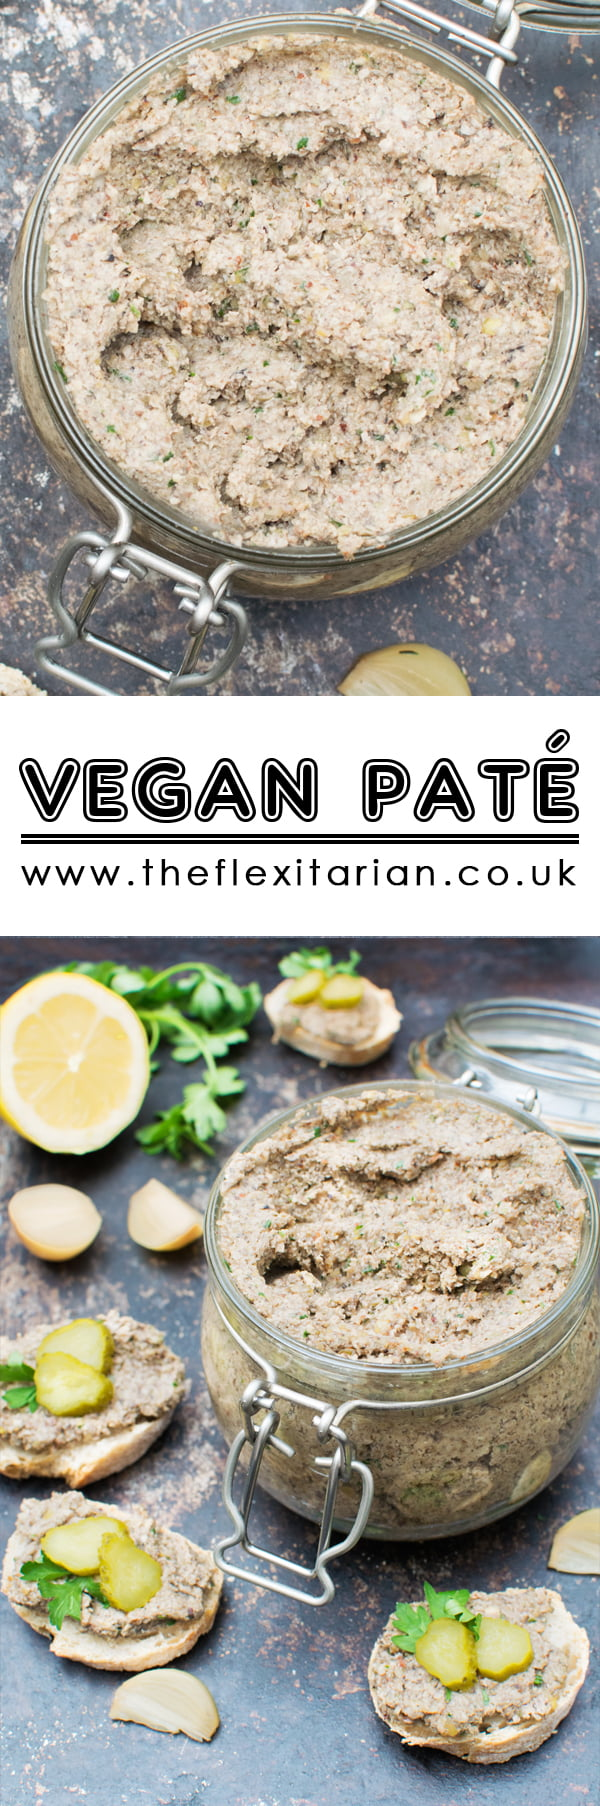 Vegan Pate [vegan] by The Flexitarian